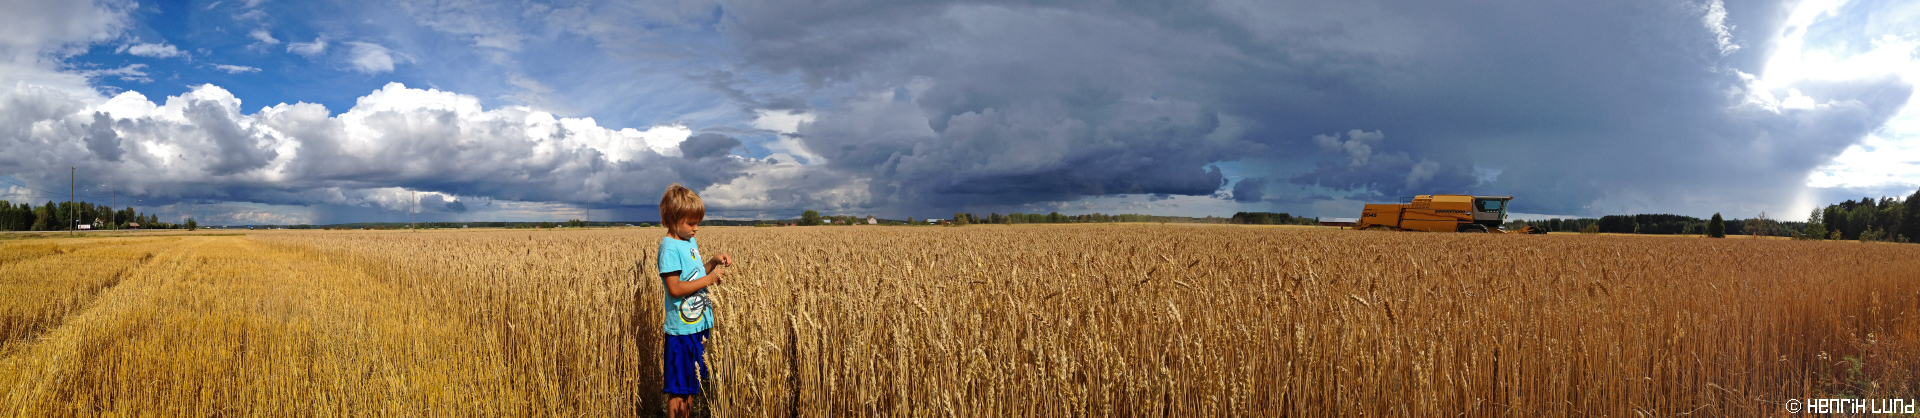 Panorama of Rasmus in the wheatfield in Skånkärret, Lappträsk, Finland. August 2014. Photogrpahed with panorama-function in Iphone 4S.